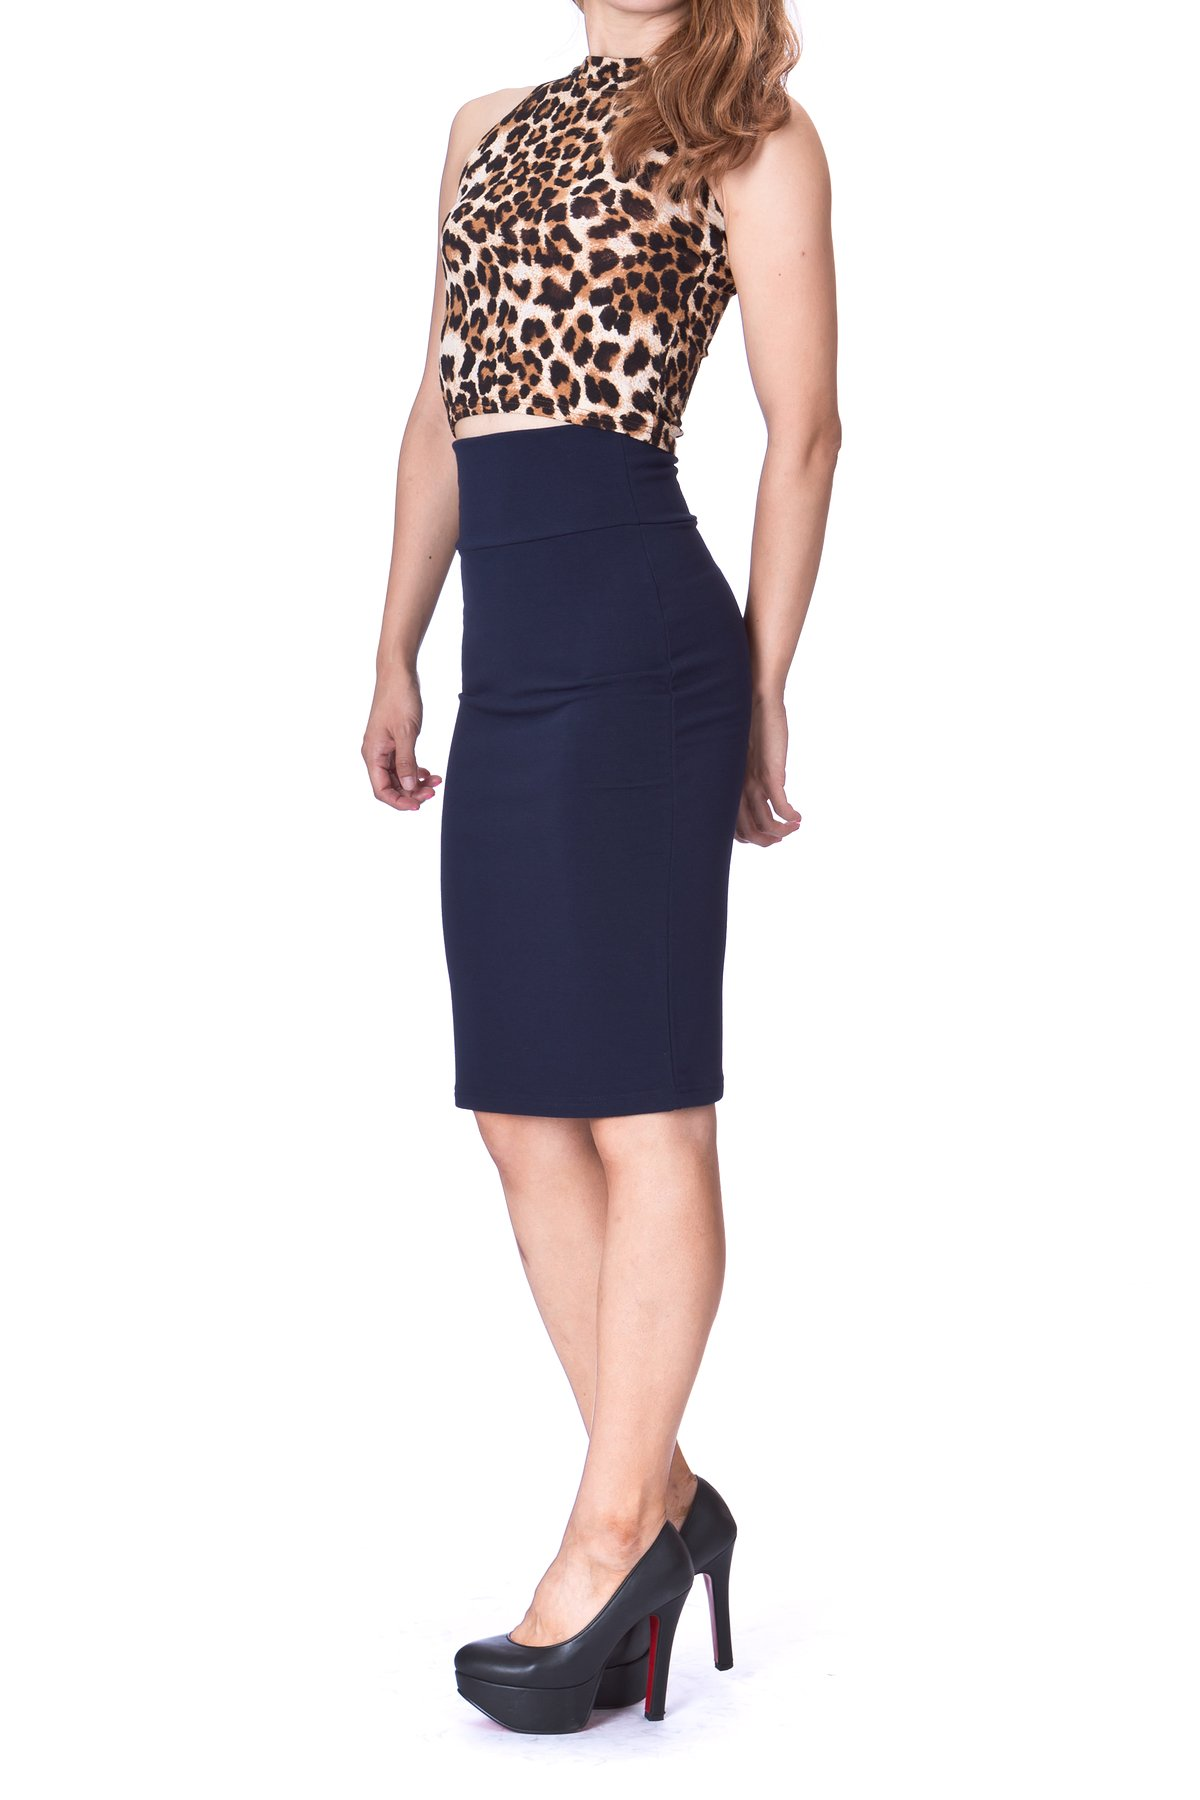 Every Occasion Stretch Pull on Wide High Waist Bodycon Pencil Knee Length Midi Skirt Navy 2